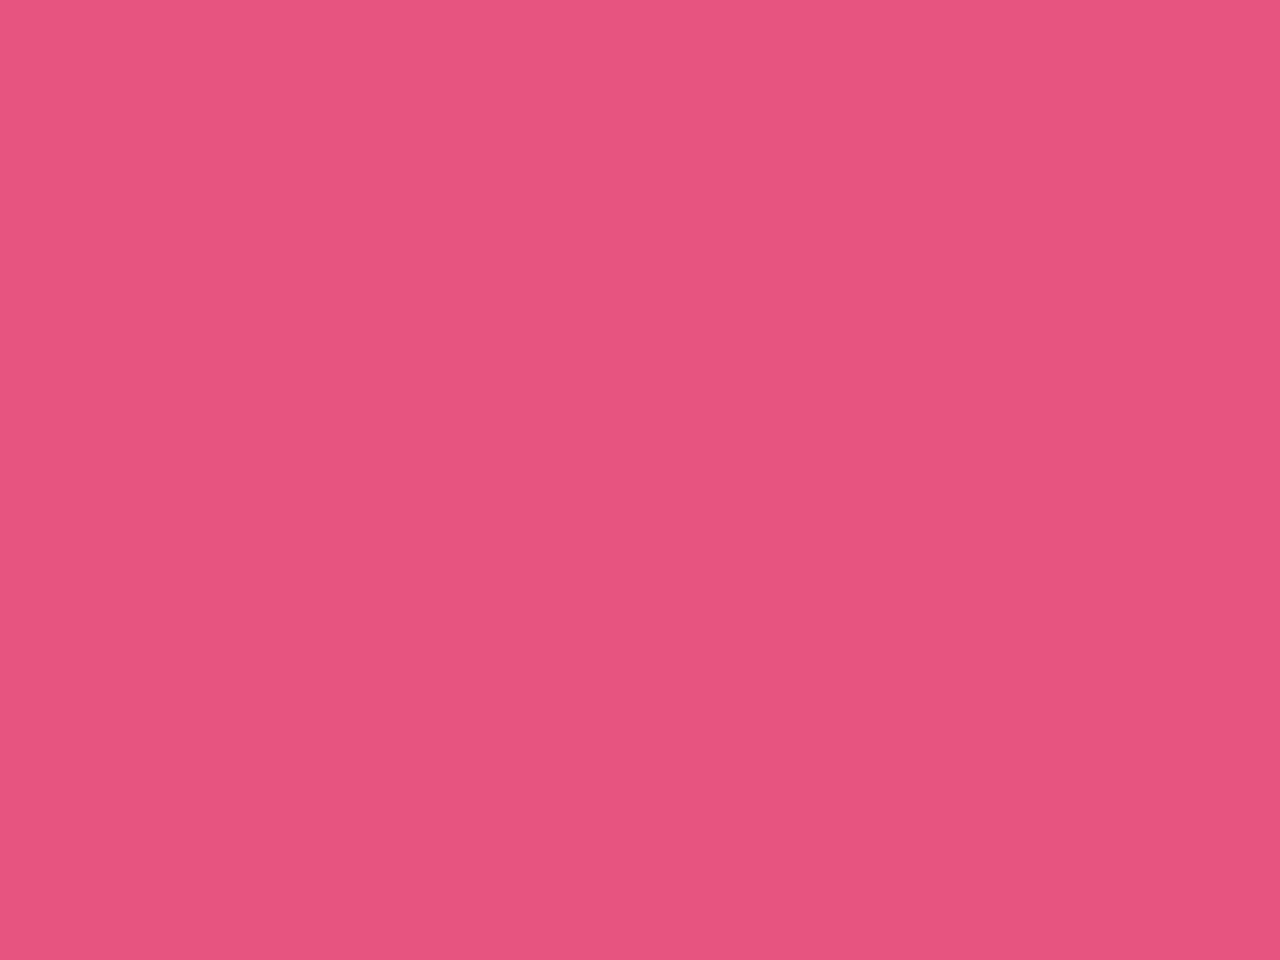 1280x960 Dark Pink Solid Color Background